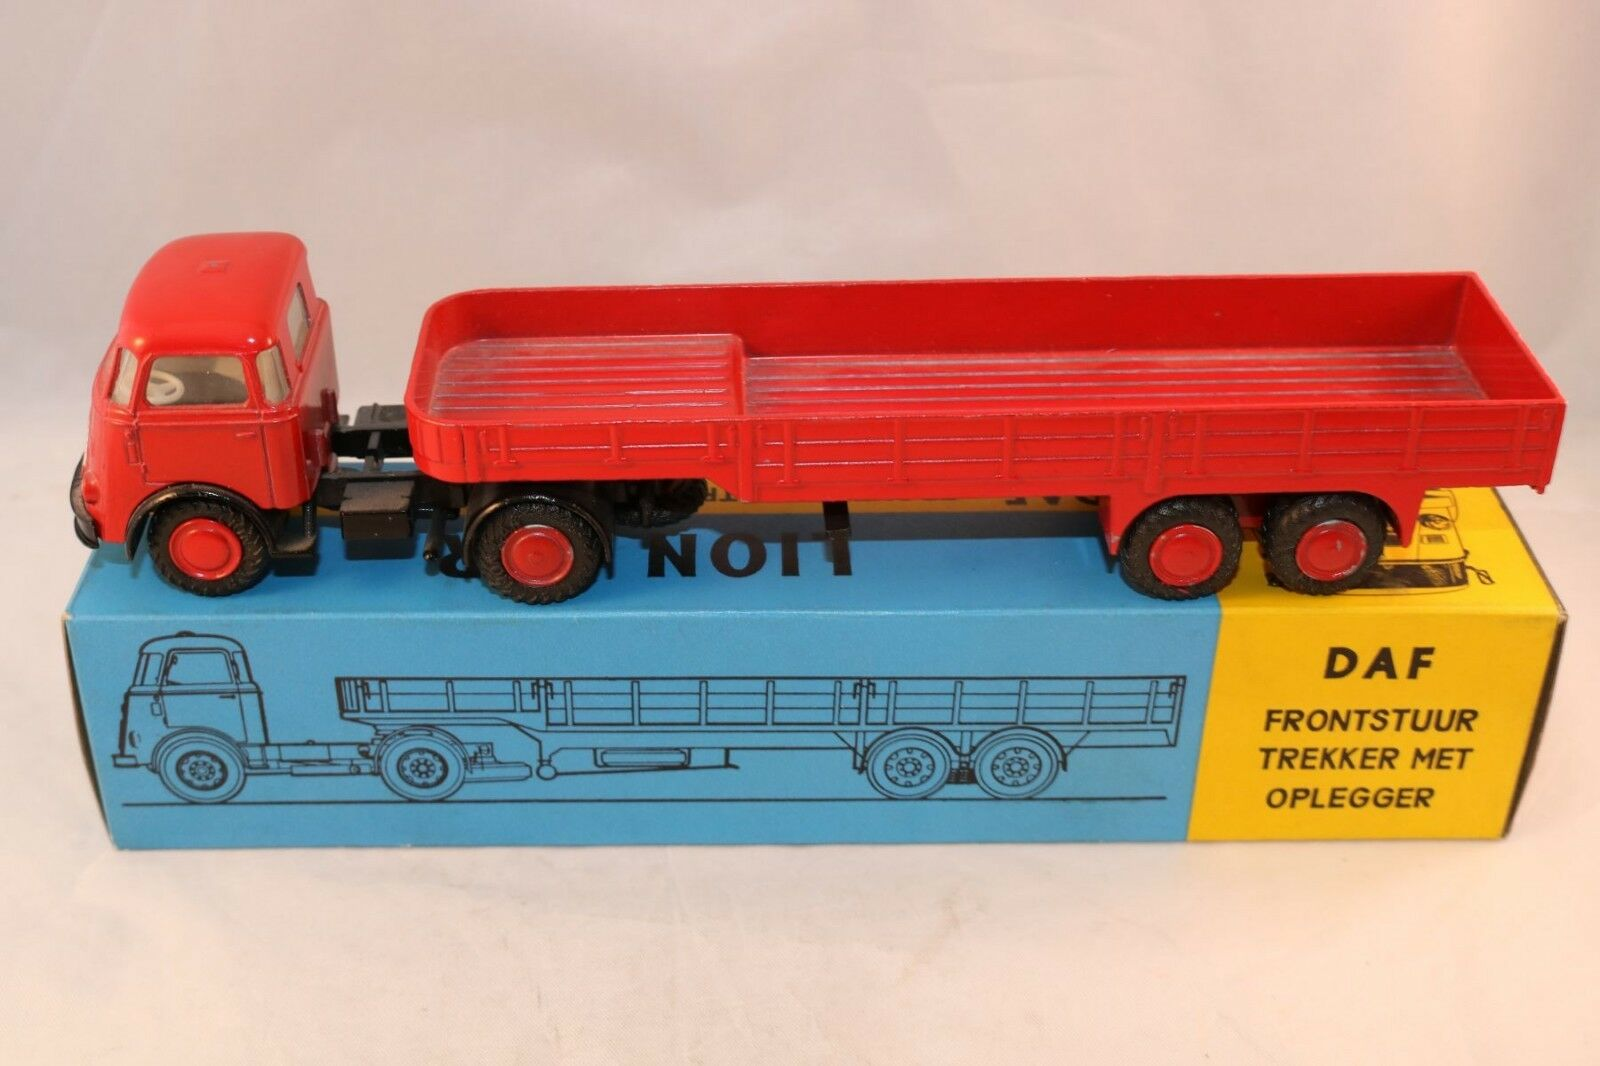 Lion Car 33-35 Daf Articulated lorry 99.9% mint in box amazing quality